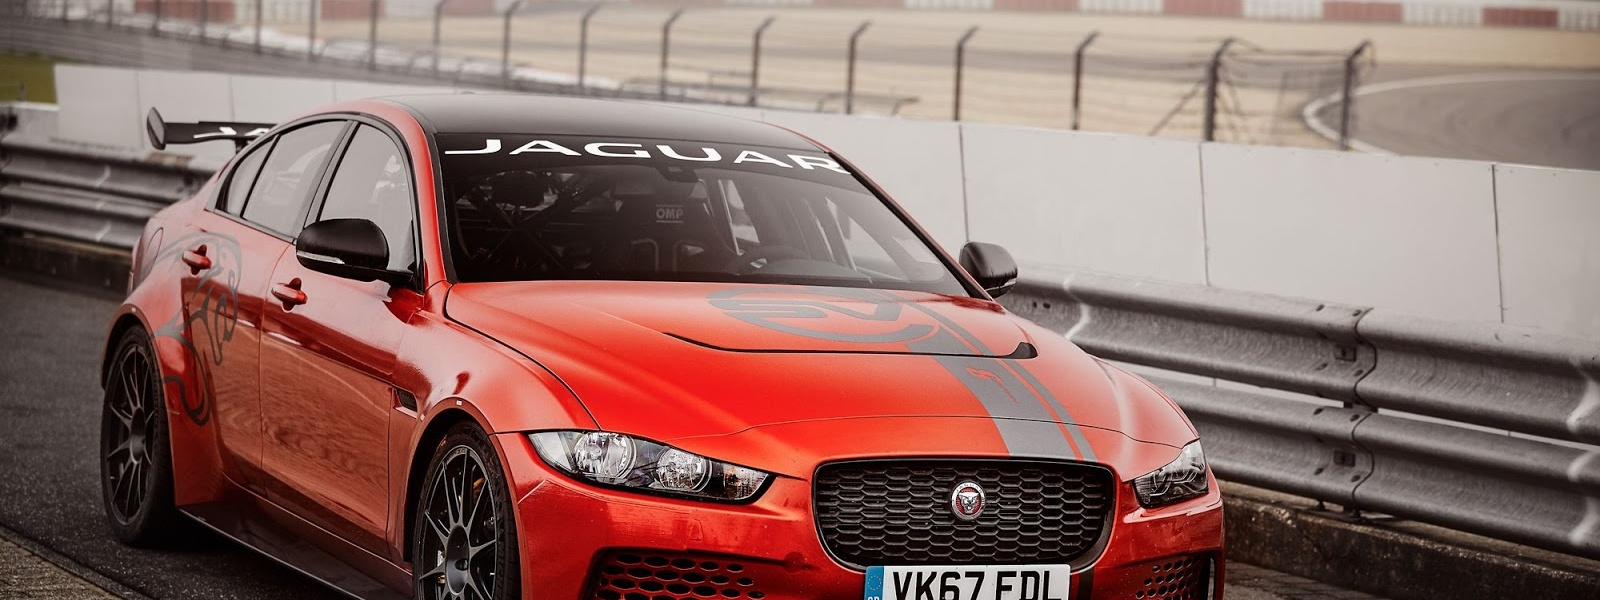 Jaguar-XE-SV-Project-8-Nurburgring-5.jpg